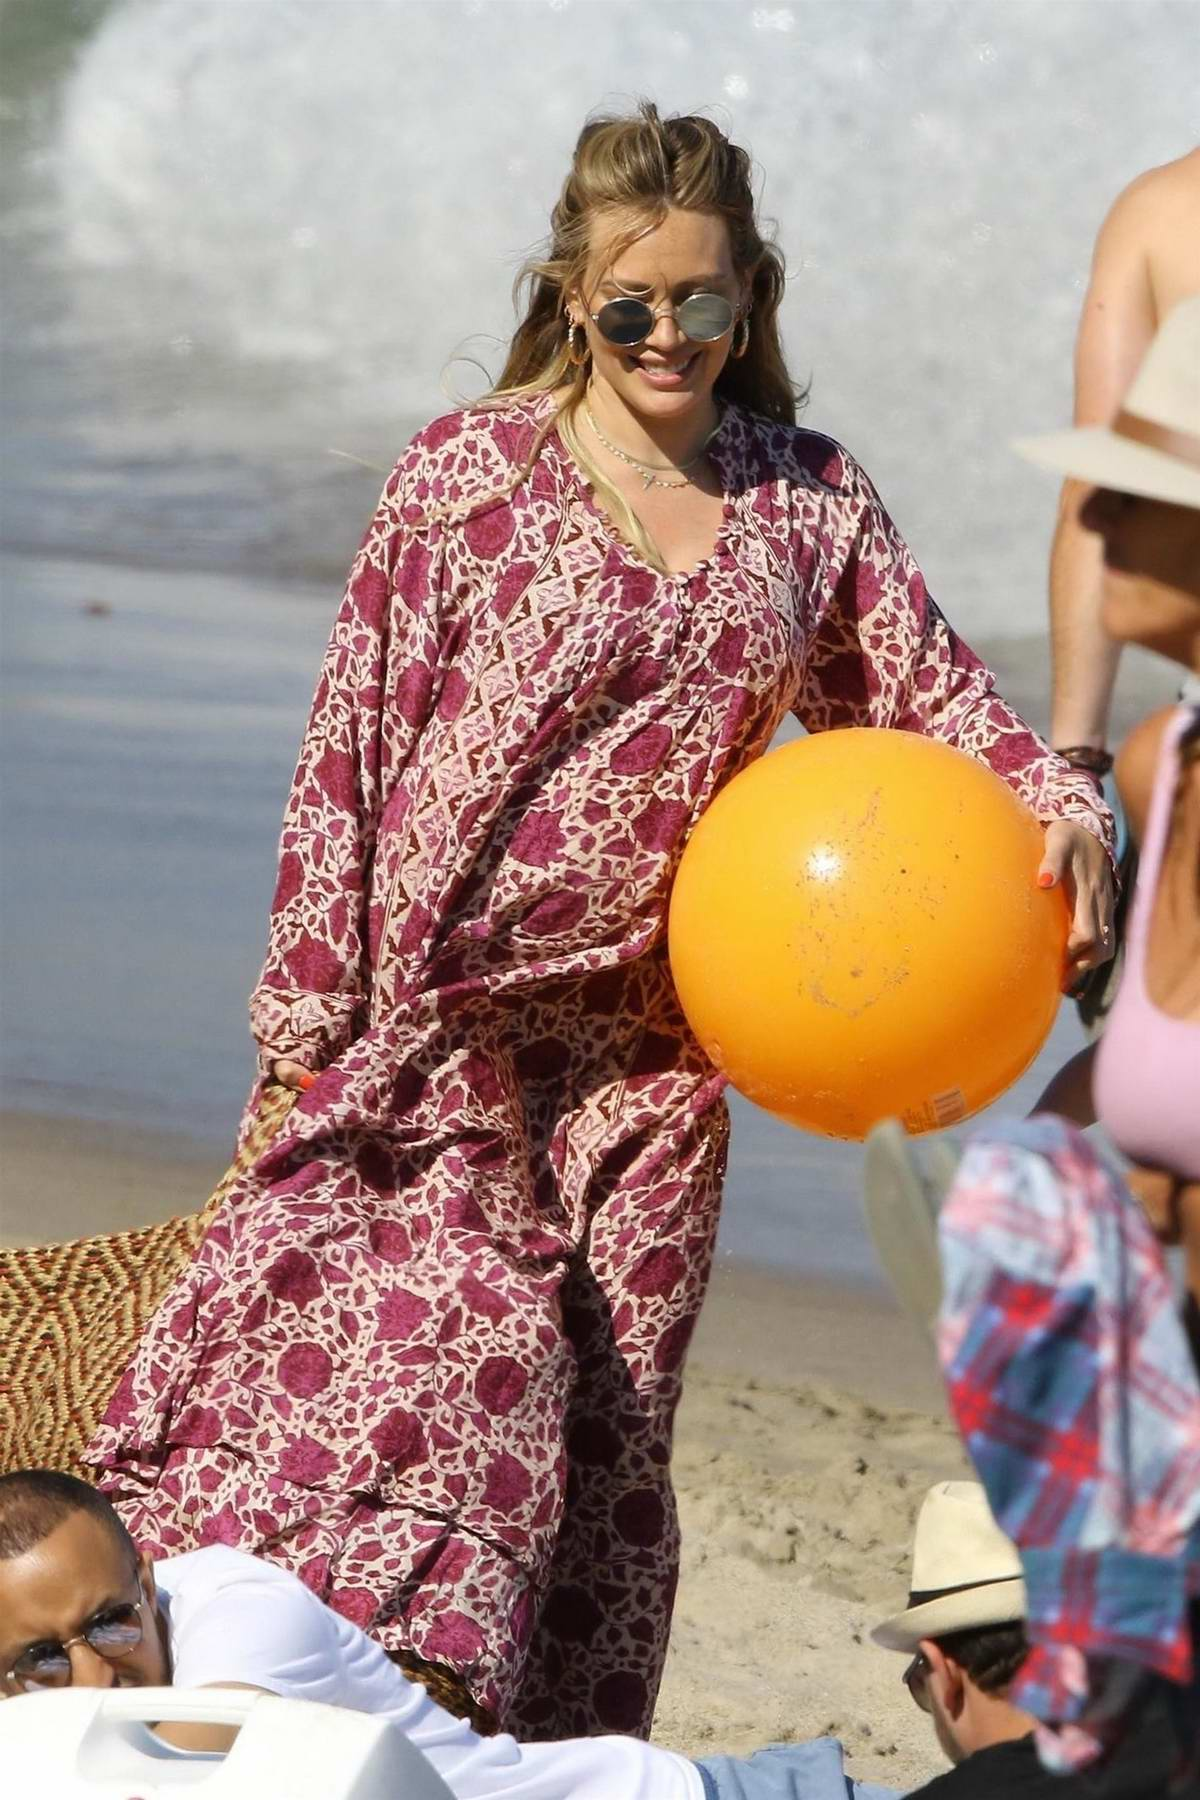 Hilary Duff enjoys a beach day with her son on the 4th of July in Malibu, California